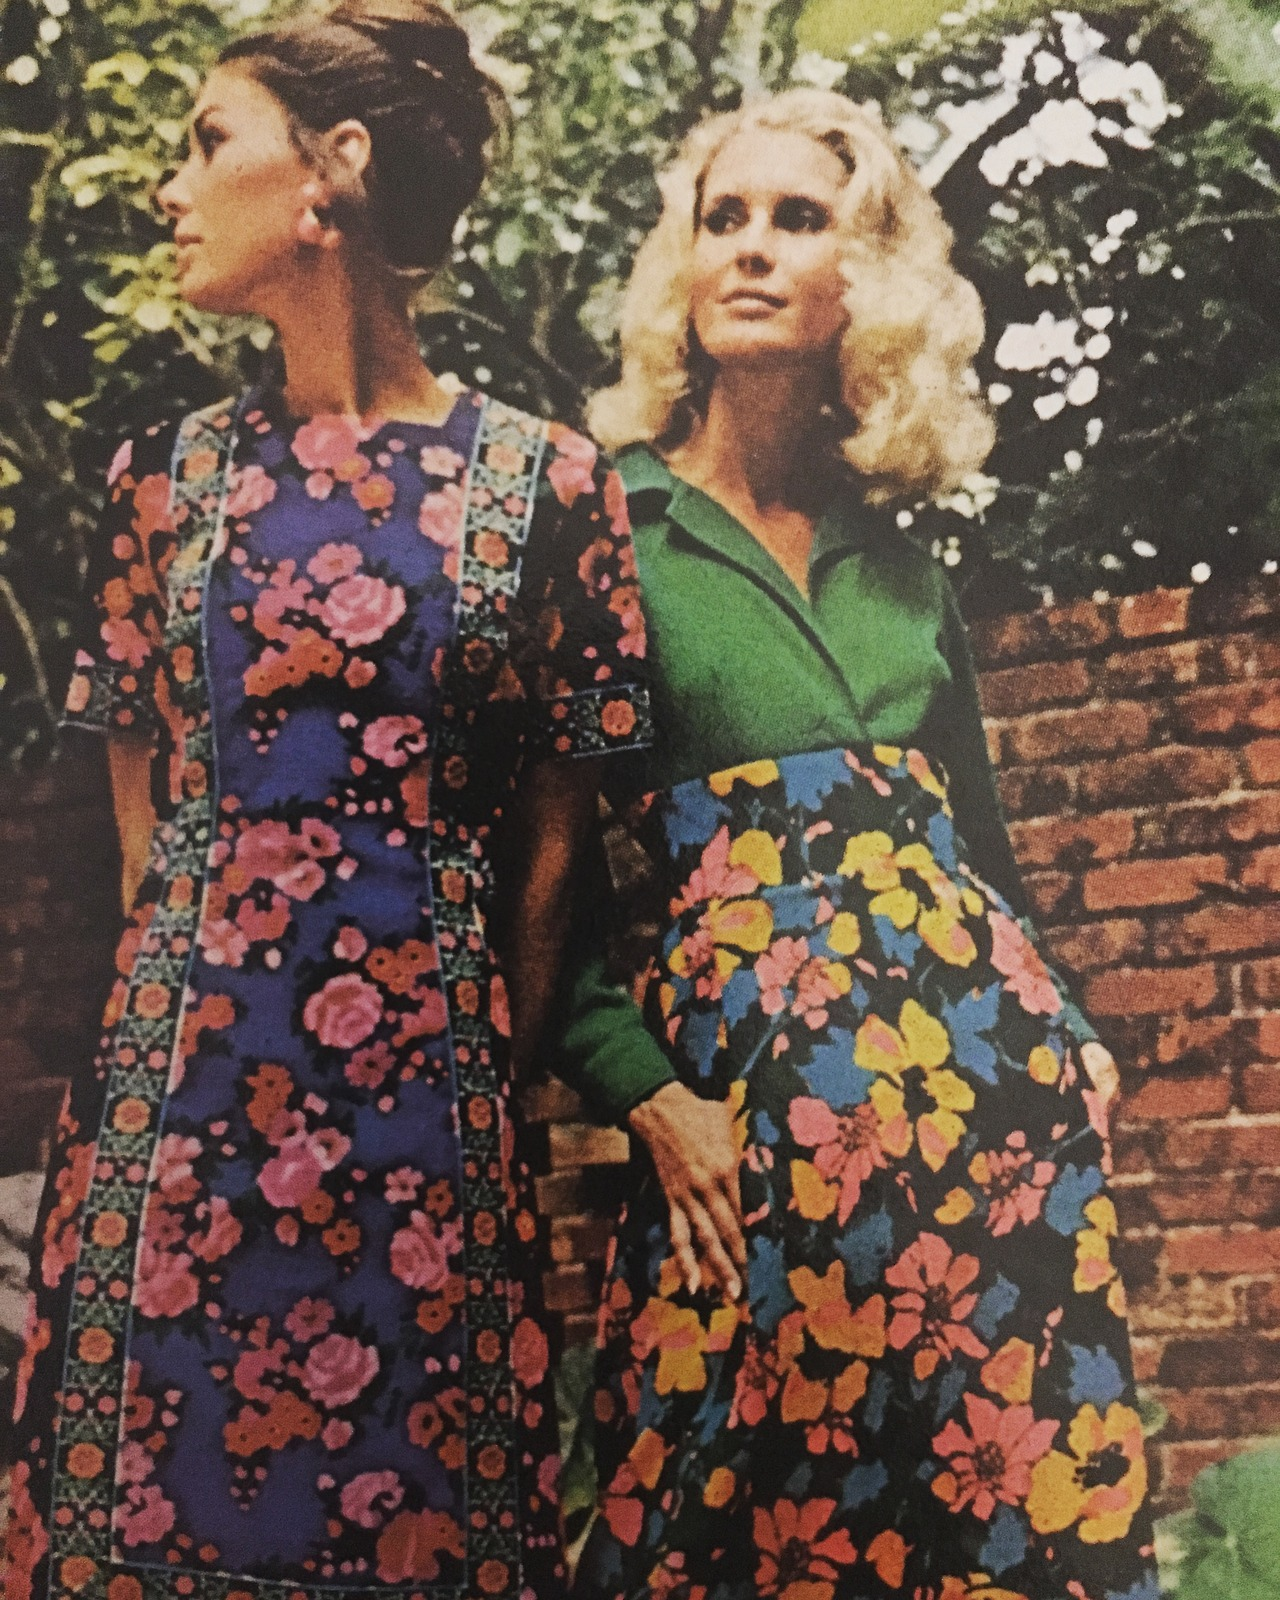 Please pick the flowers!   Lilly Pulitzer.   Vogue. August 1, 1971.  Lilly Pulitzer is known as the Queen of Prep, and is synonymous with bright floral prints. The funny thing is, the brand was pretty much started as a fluke. Being that the Pulitzers owned citrus groves in Florida, they opened a juice stand in Palm Beach. Squeezing oranges created a mess, so she made a dress to mask it with the printed fabric that the brand is known for. With so many compliments on the dress, she made some for sale at the stand, and soon the dresses would be far more successful than the juice. It also didn't hurt that one famous former classmate of Lilly's, Jackie Kennedy Onassis was photographed in her creations, which escalated the brand's popularity among the socialite set.